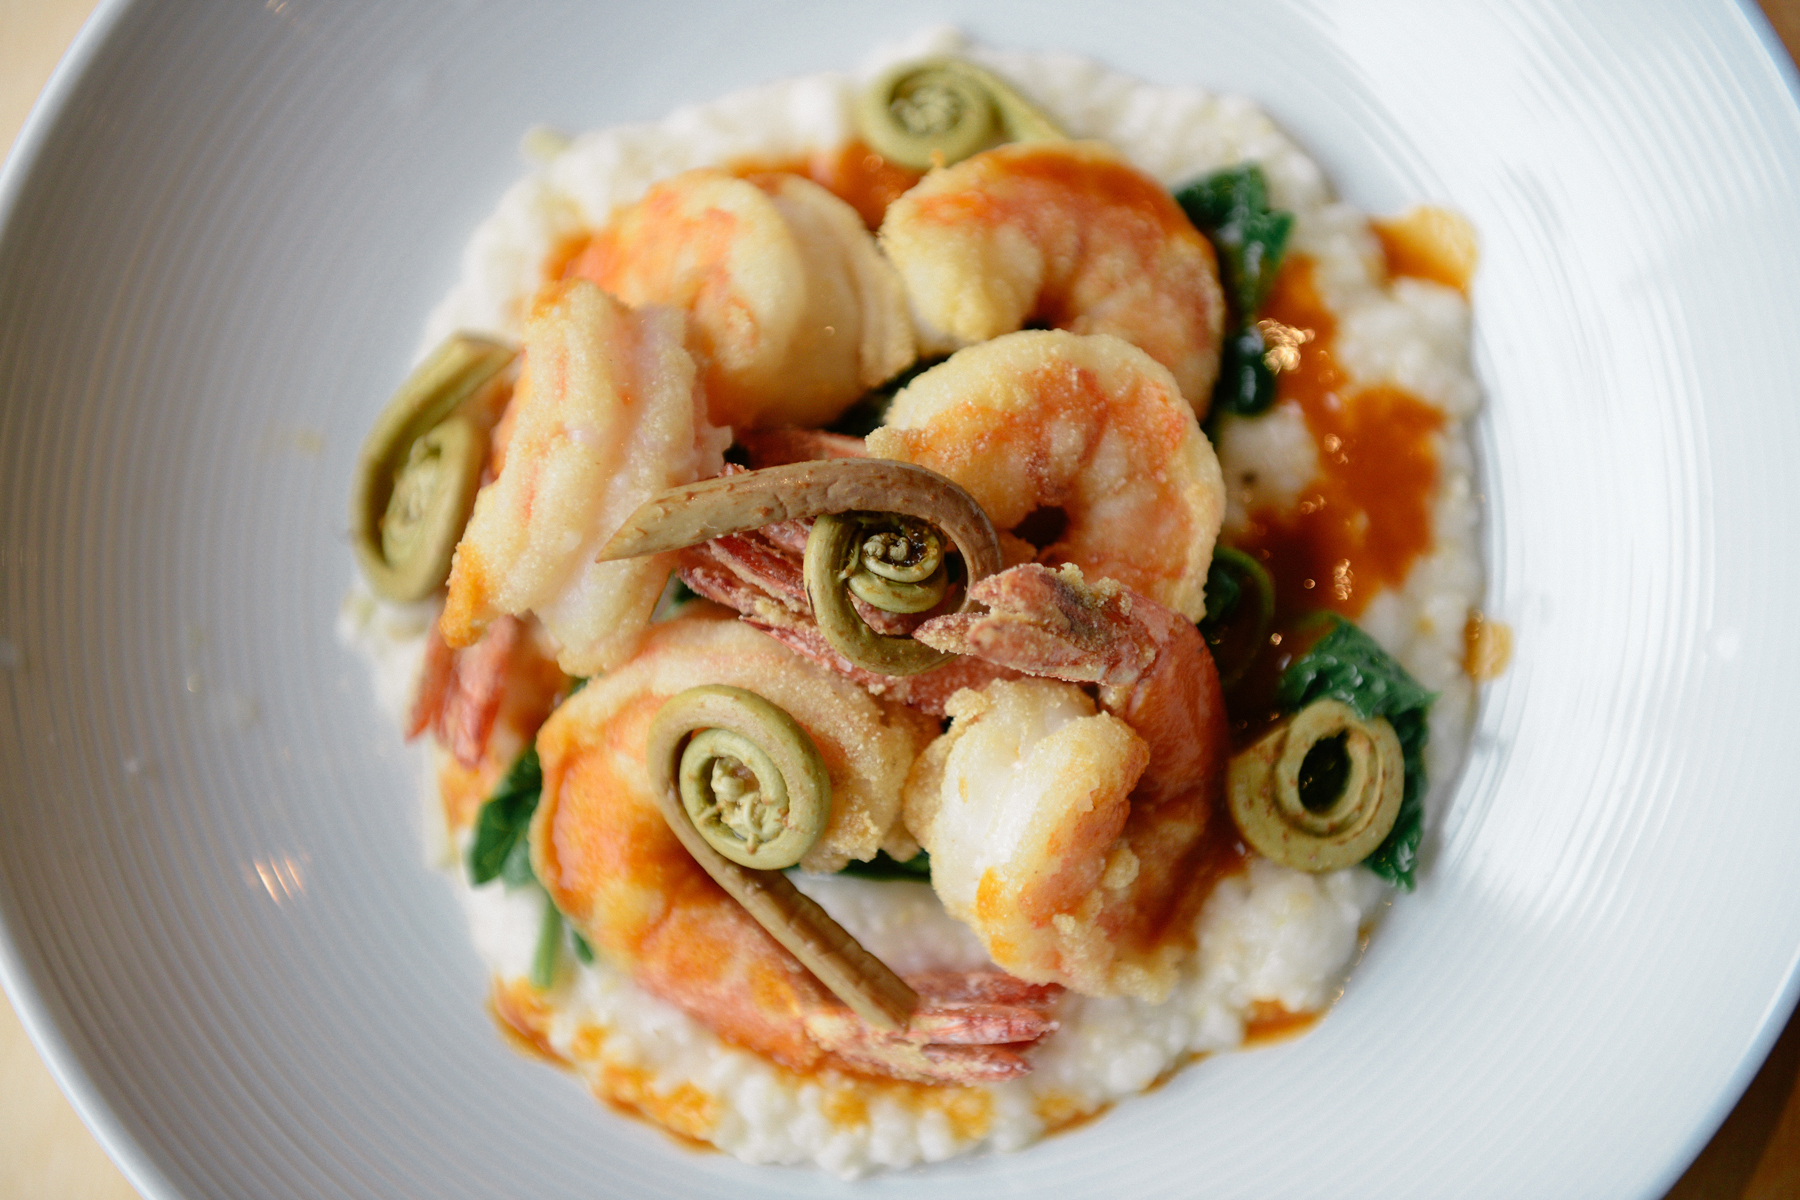 Shrimp and grits from Junebaby in Seattle